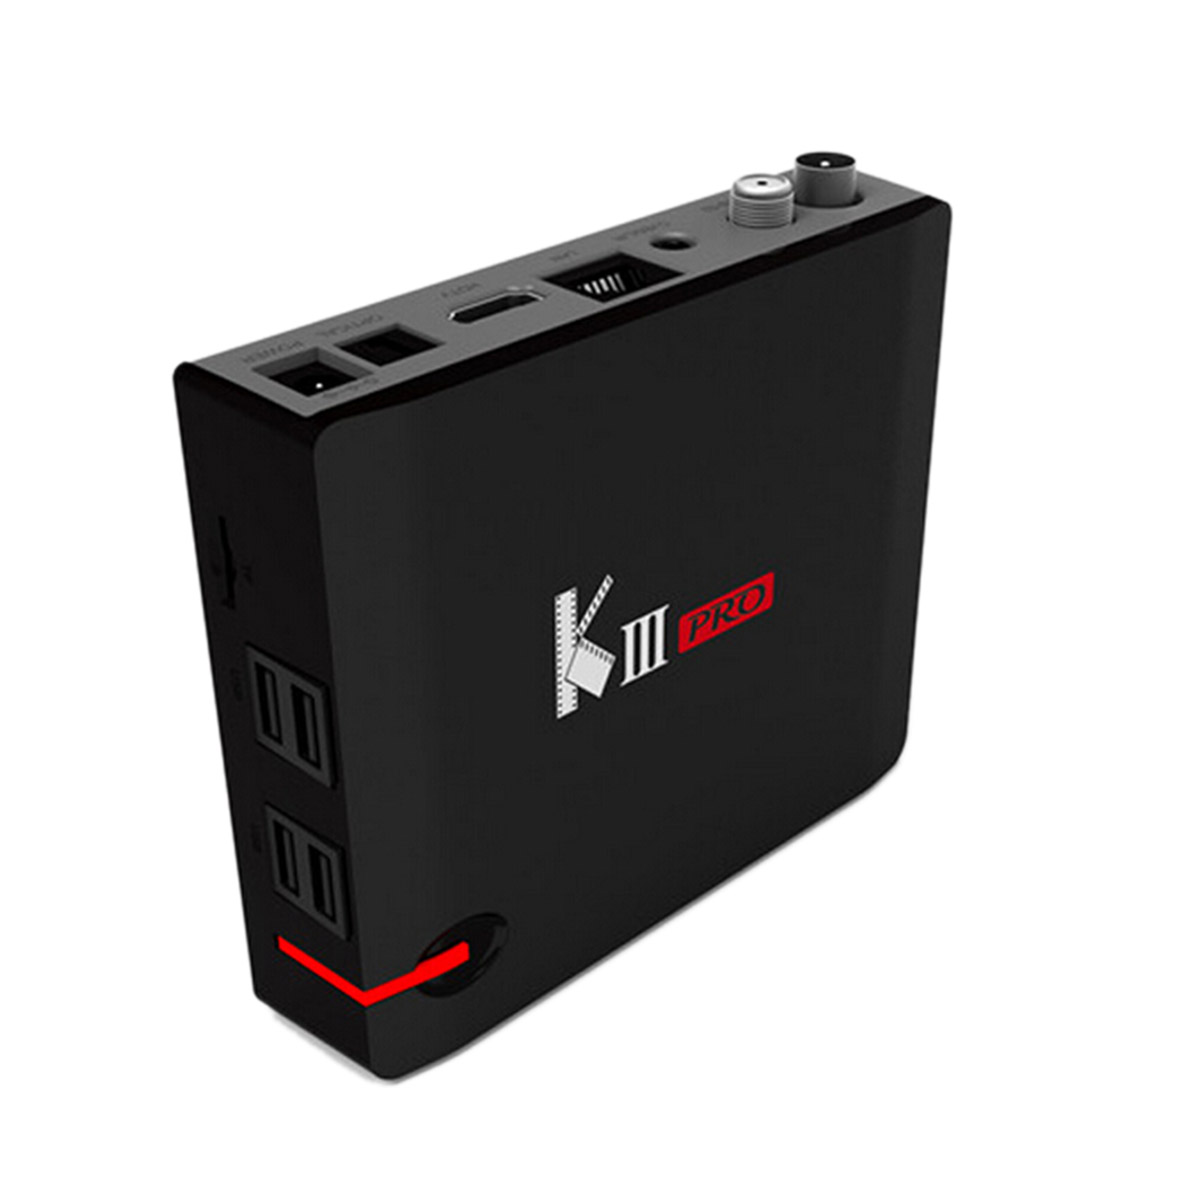 KIII Pro DVB-T2 DVB-S2 Android 6.0 TV Box Amlogic S912 Octa Core 3GB 16GB Smart TV Box 2.4G/5GHz Wifi Bluetooth 4K Media Player